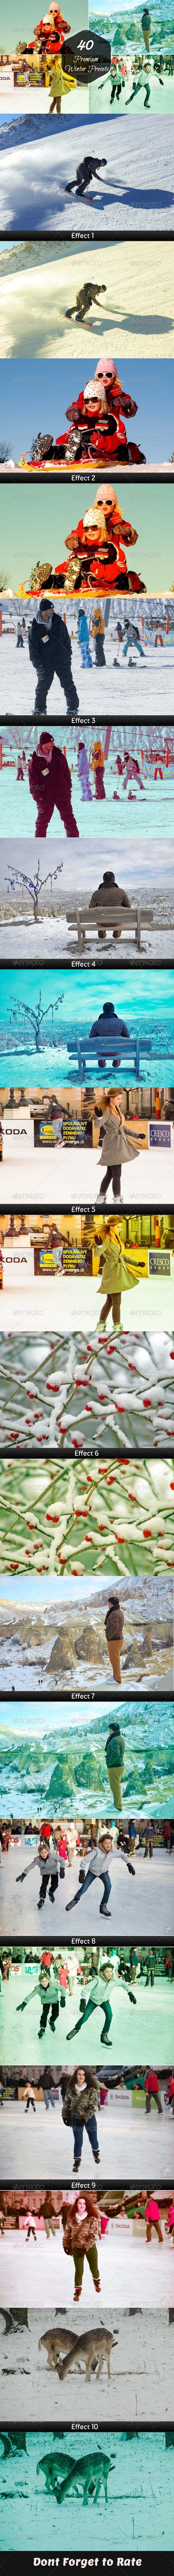 GraphicRiver 40 Premium Winter Lightroom Presets 7025818